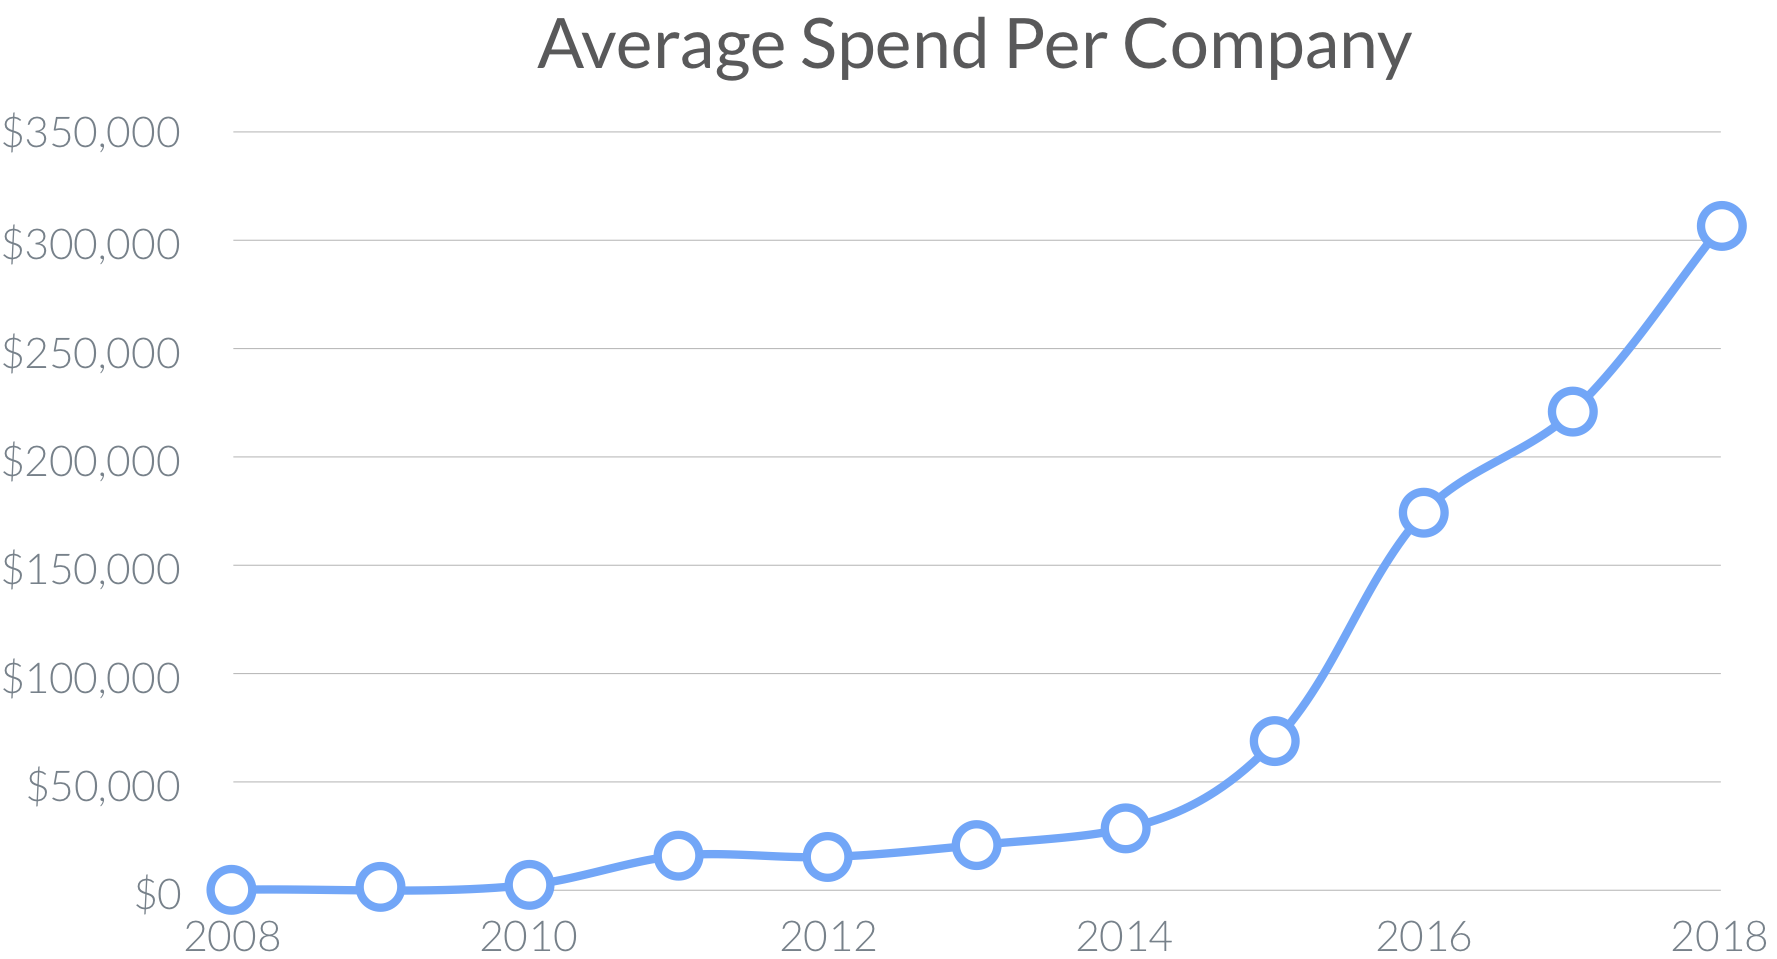 Average Spend per Company